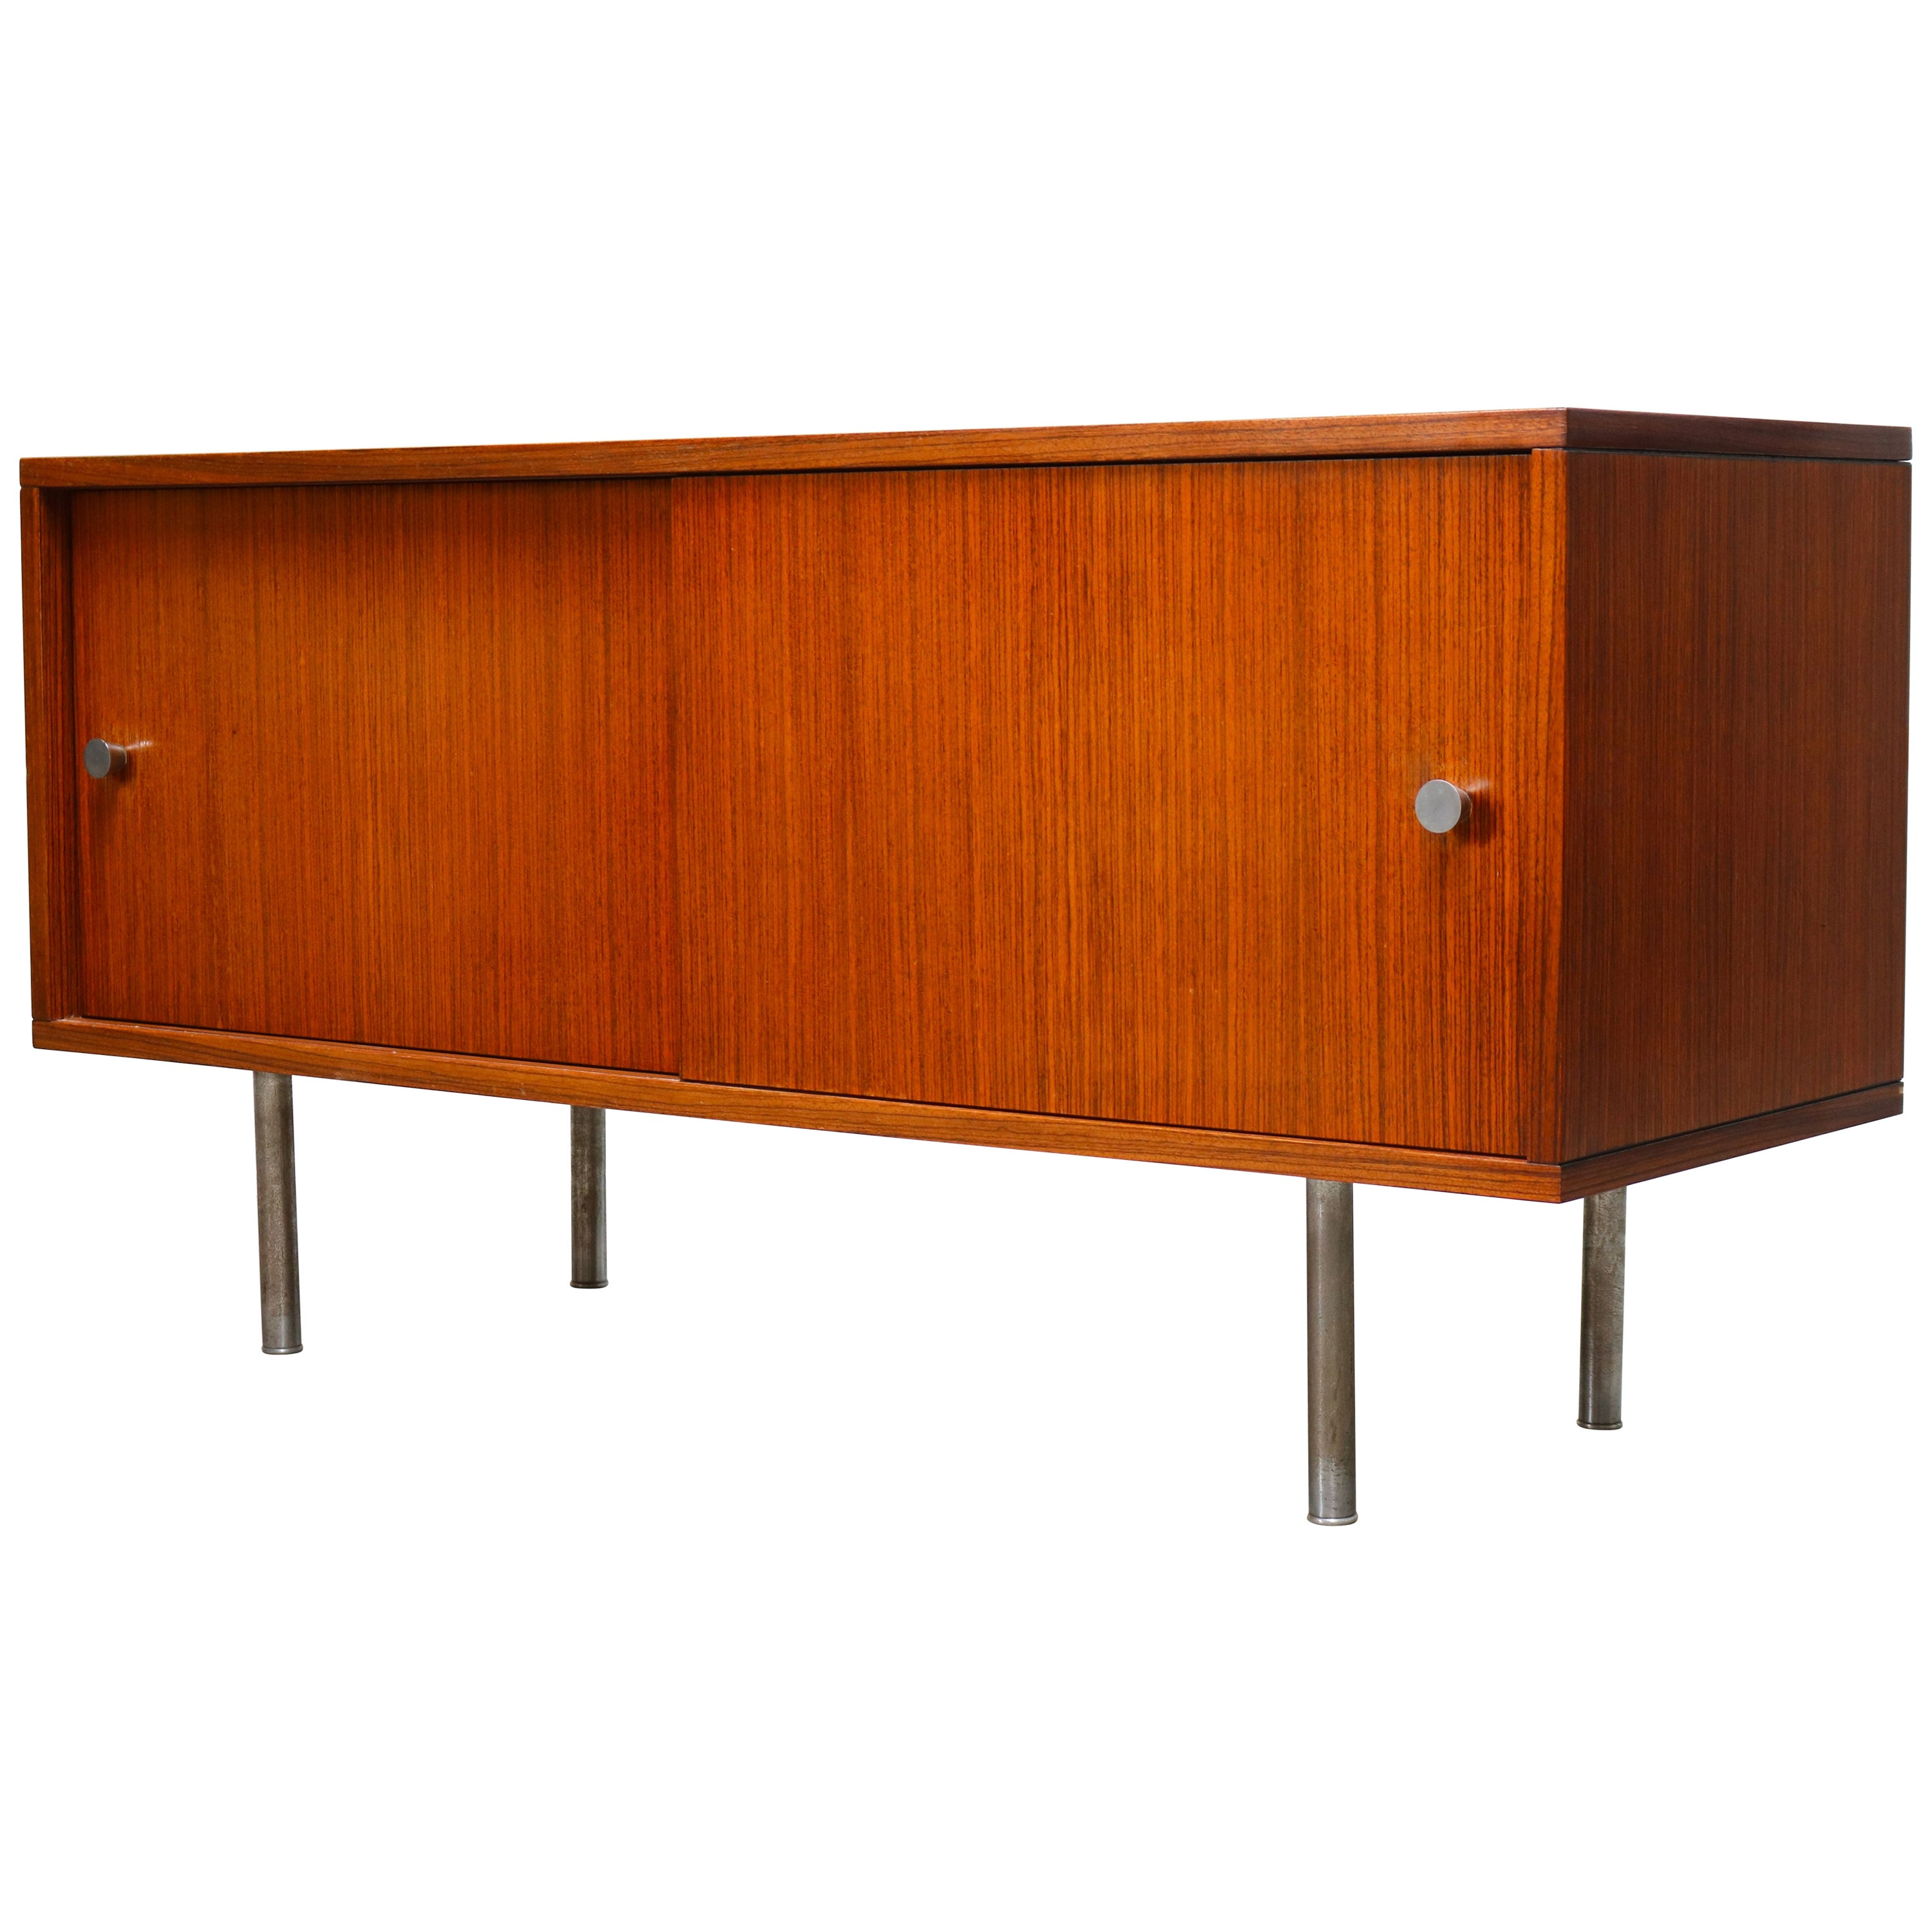 Design Sideboard / Credenza by Alfred Hendrickx for Belform Chrome Minimalist